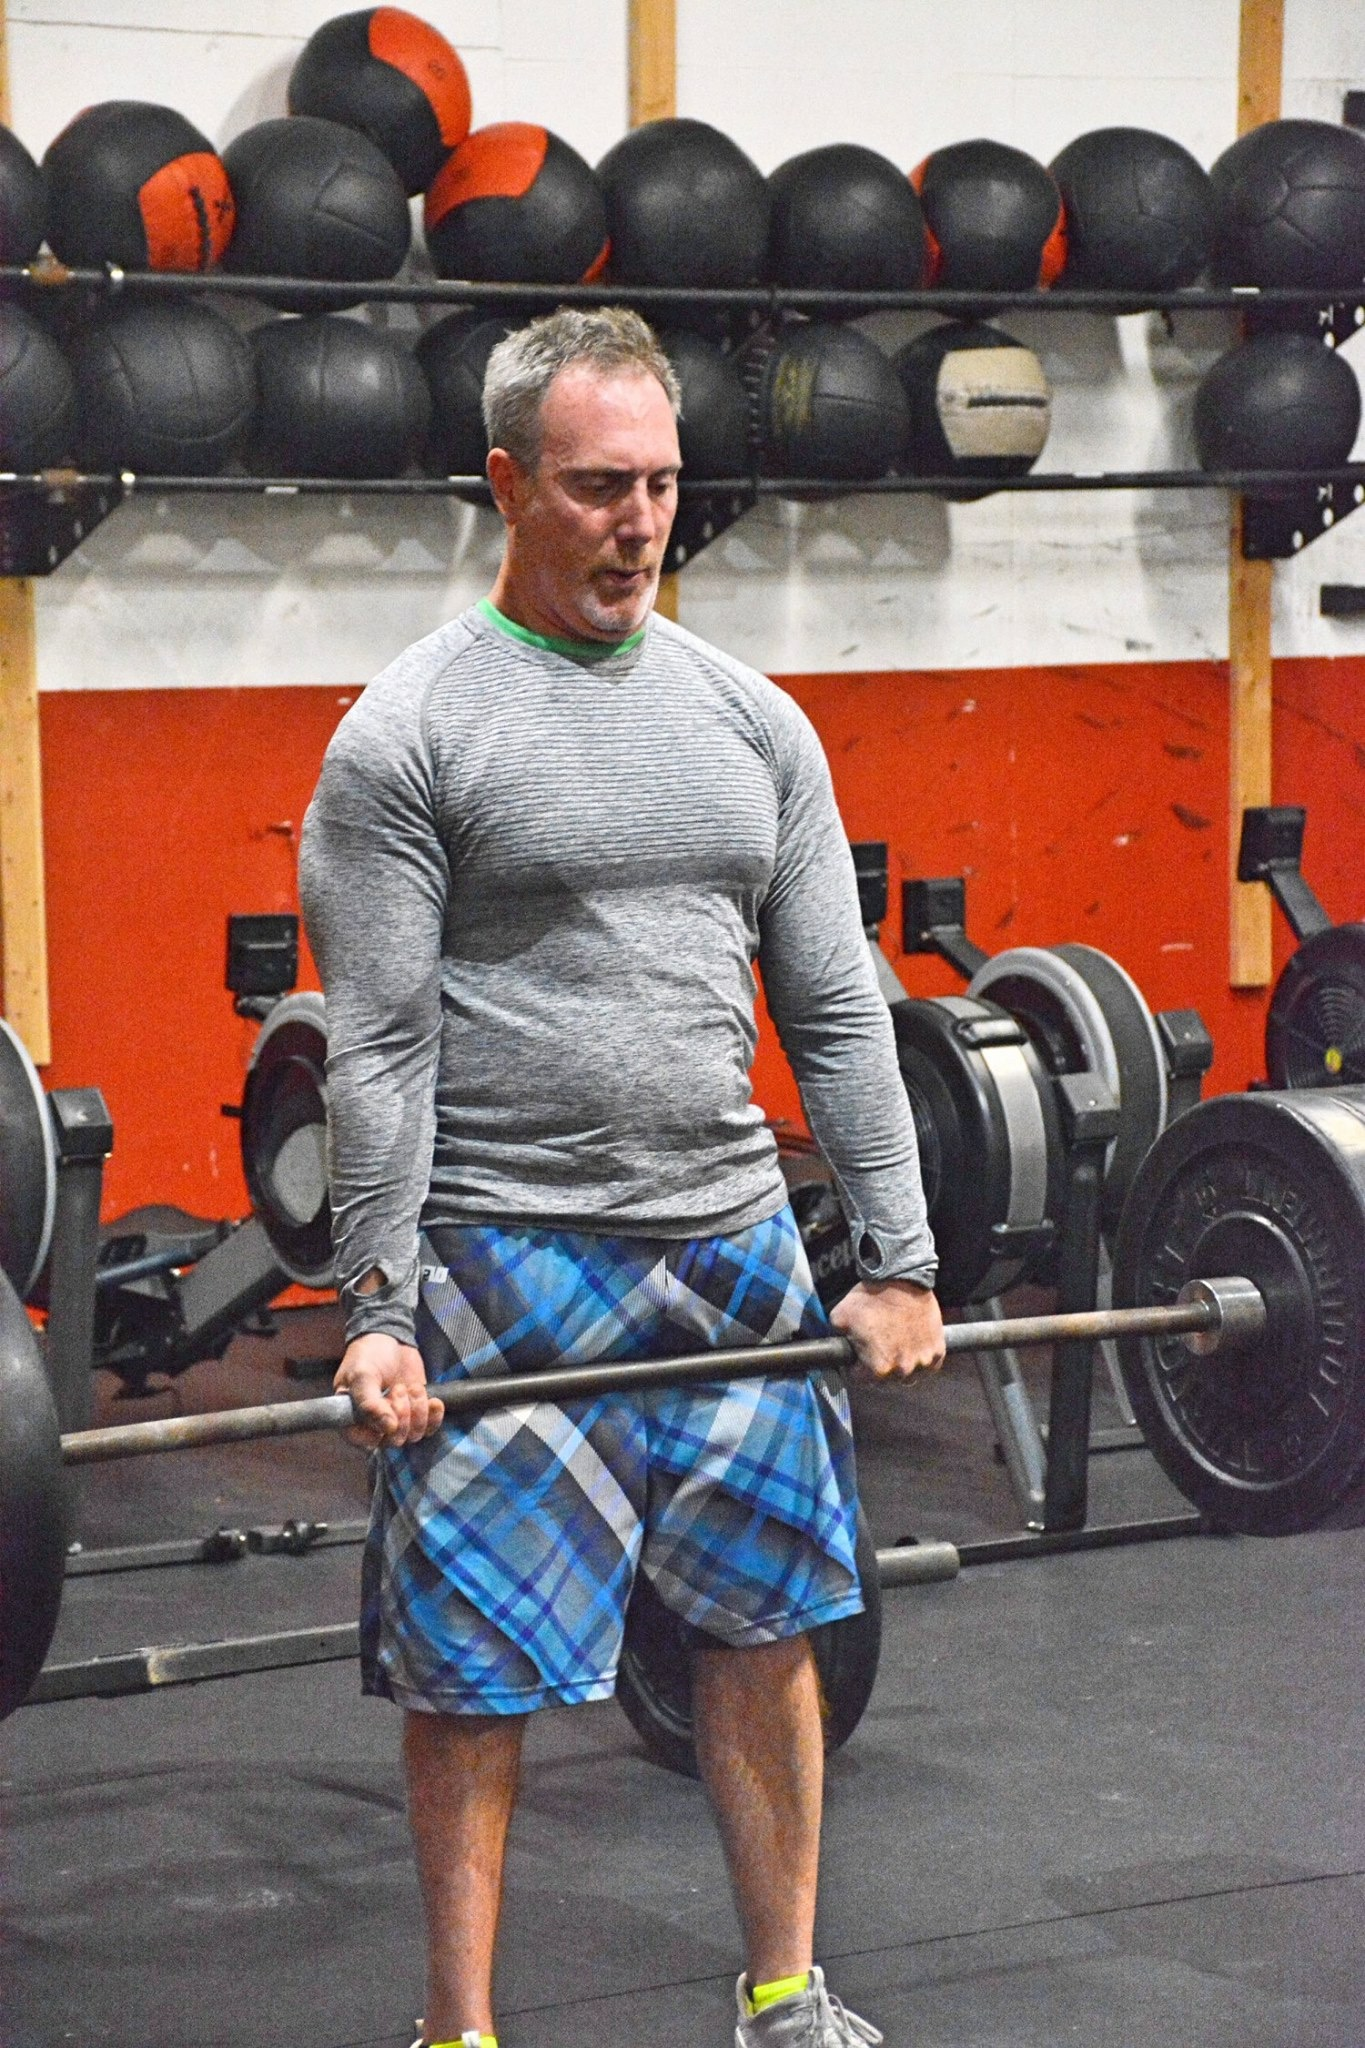 Tuesday, October 30 WOD